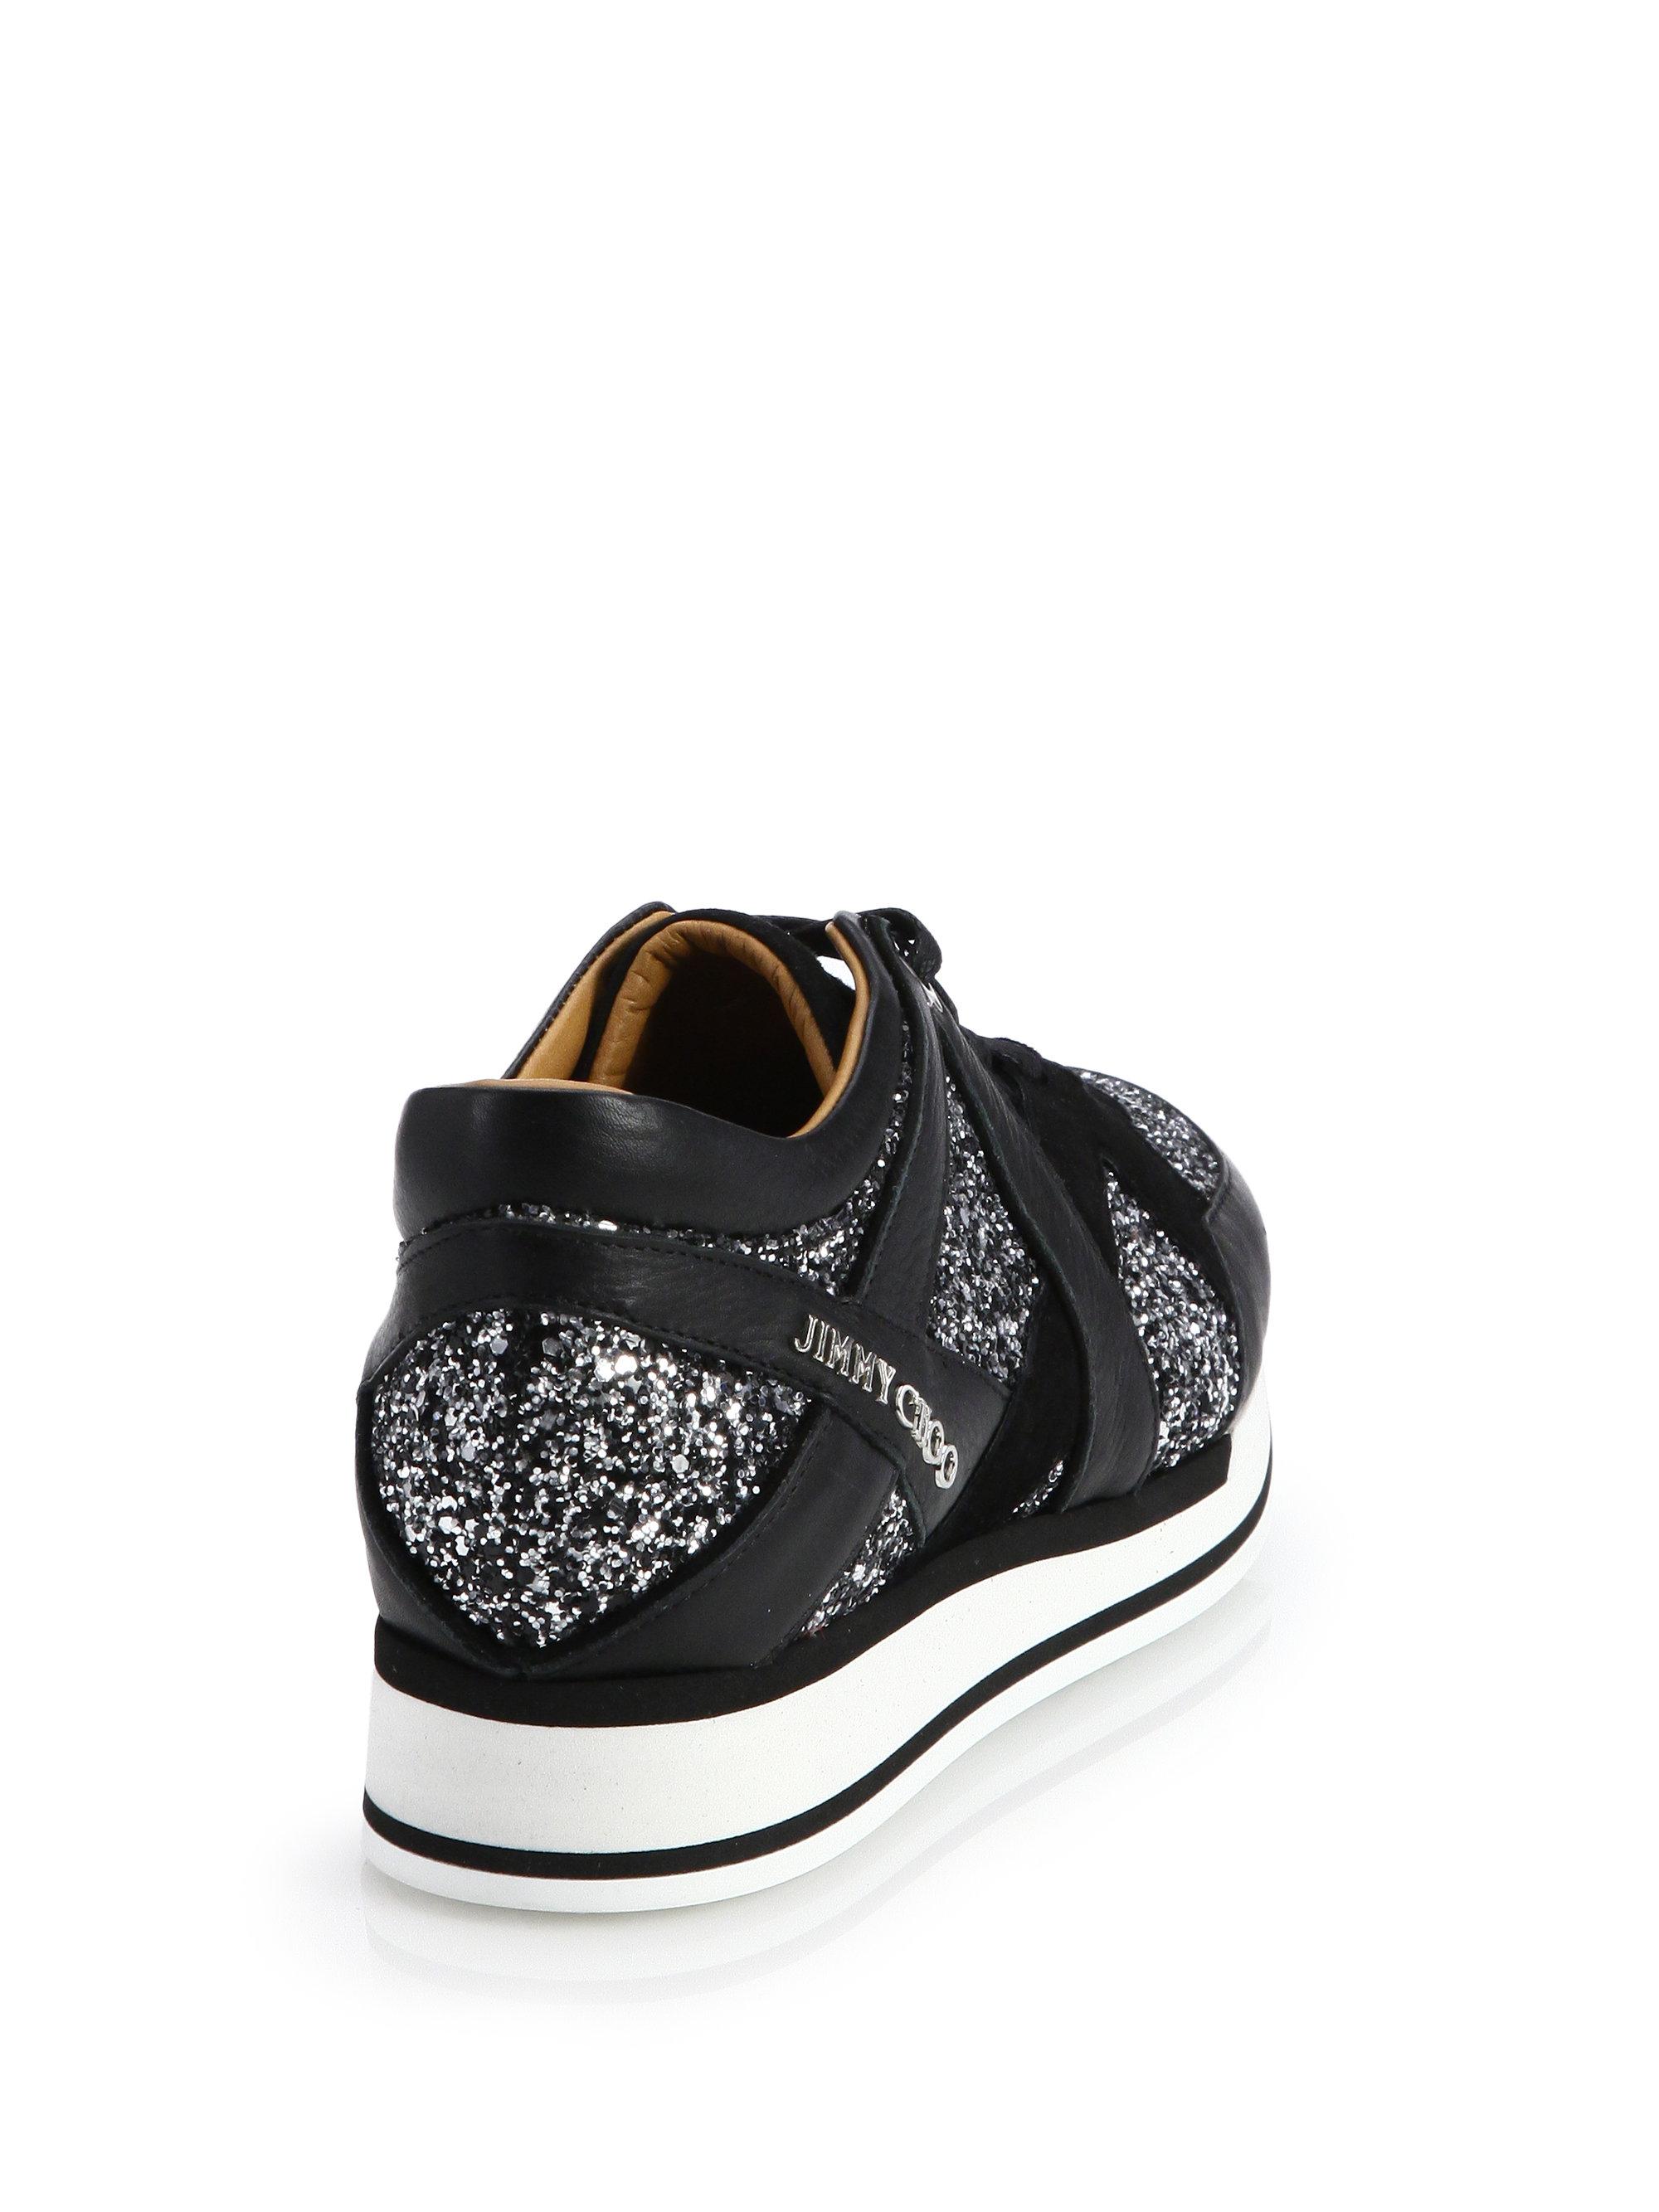 Black Leather Jett Sport Sneakers Jimmy Choo London E8b7n